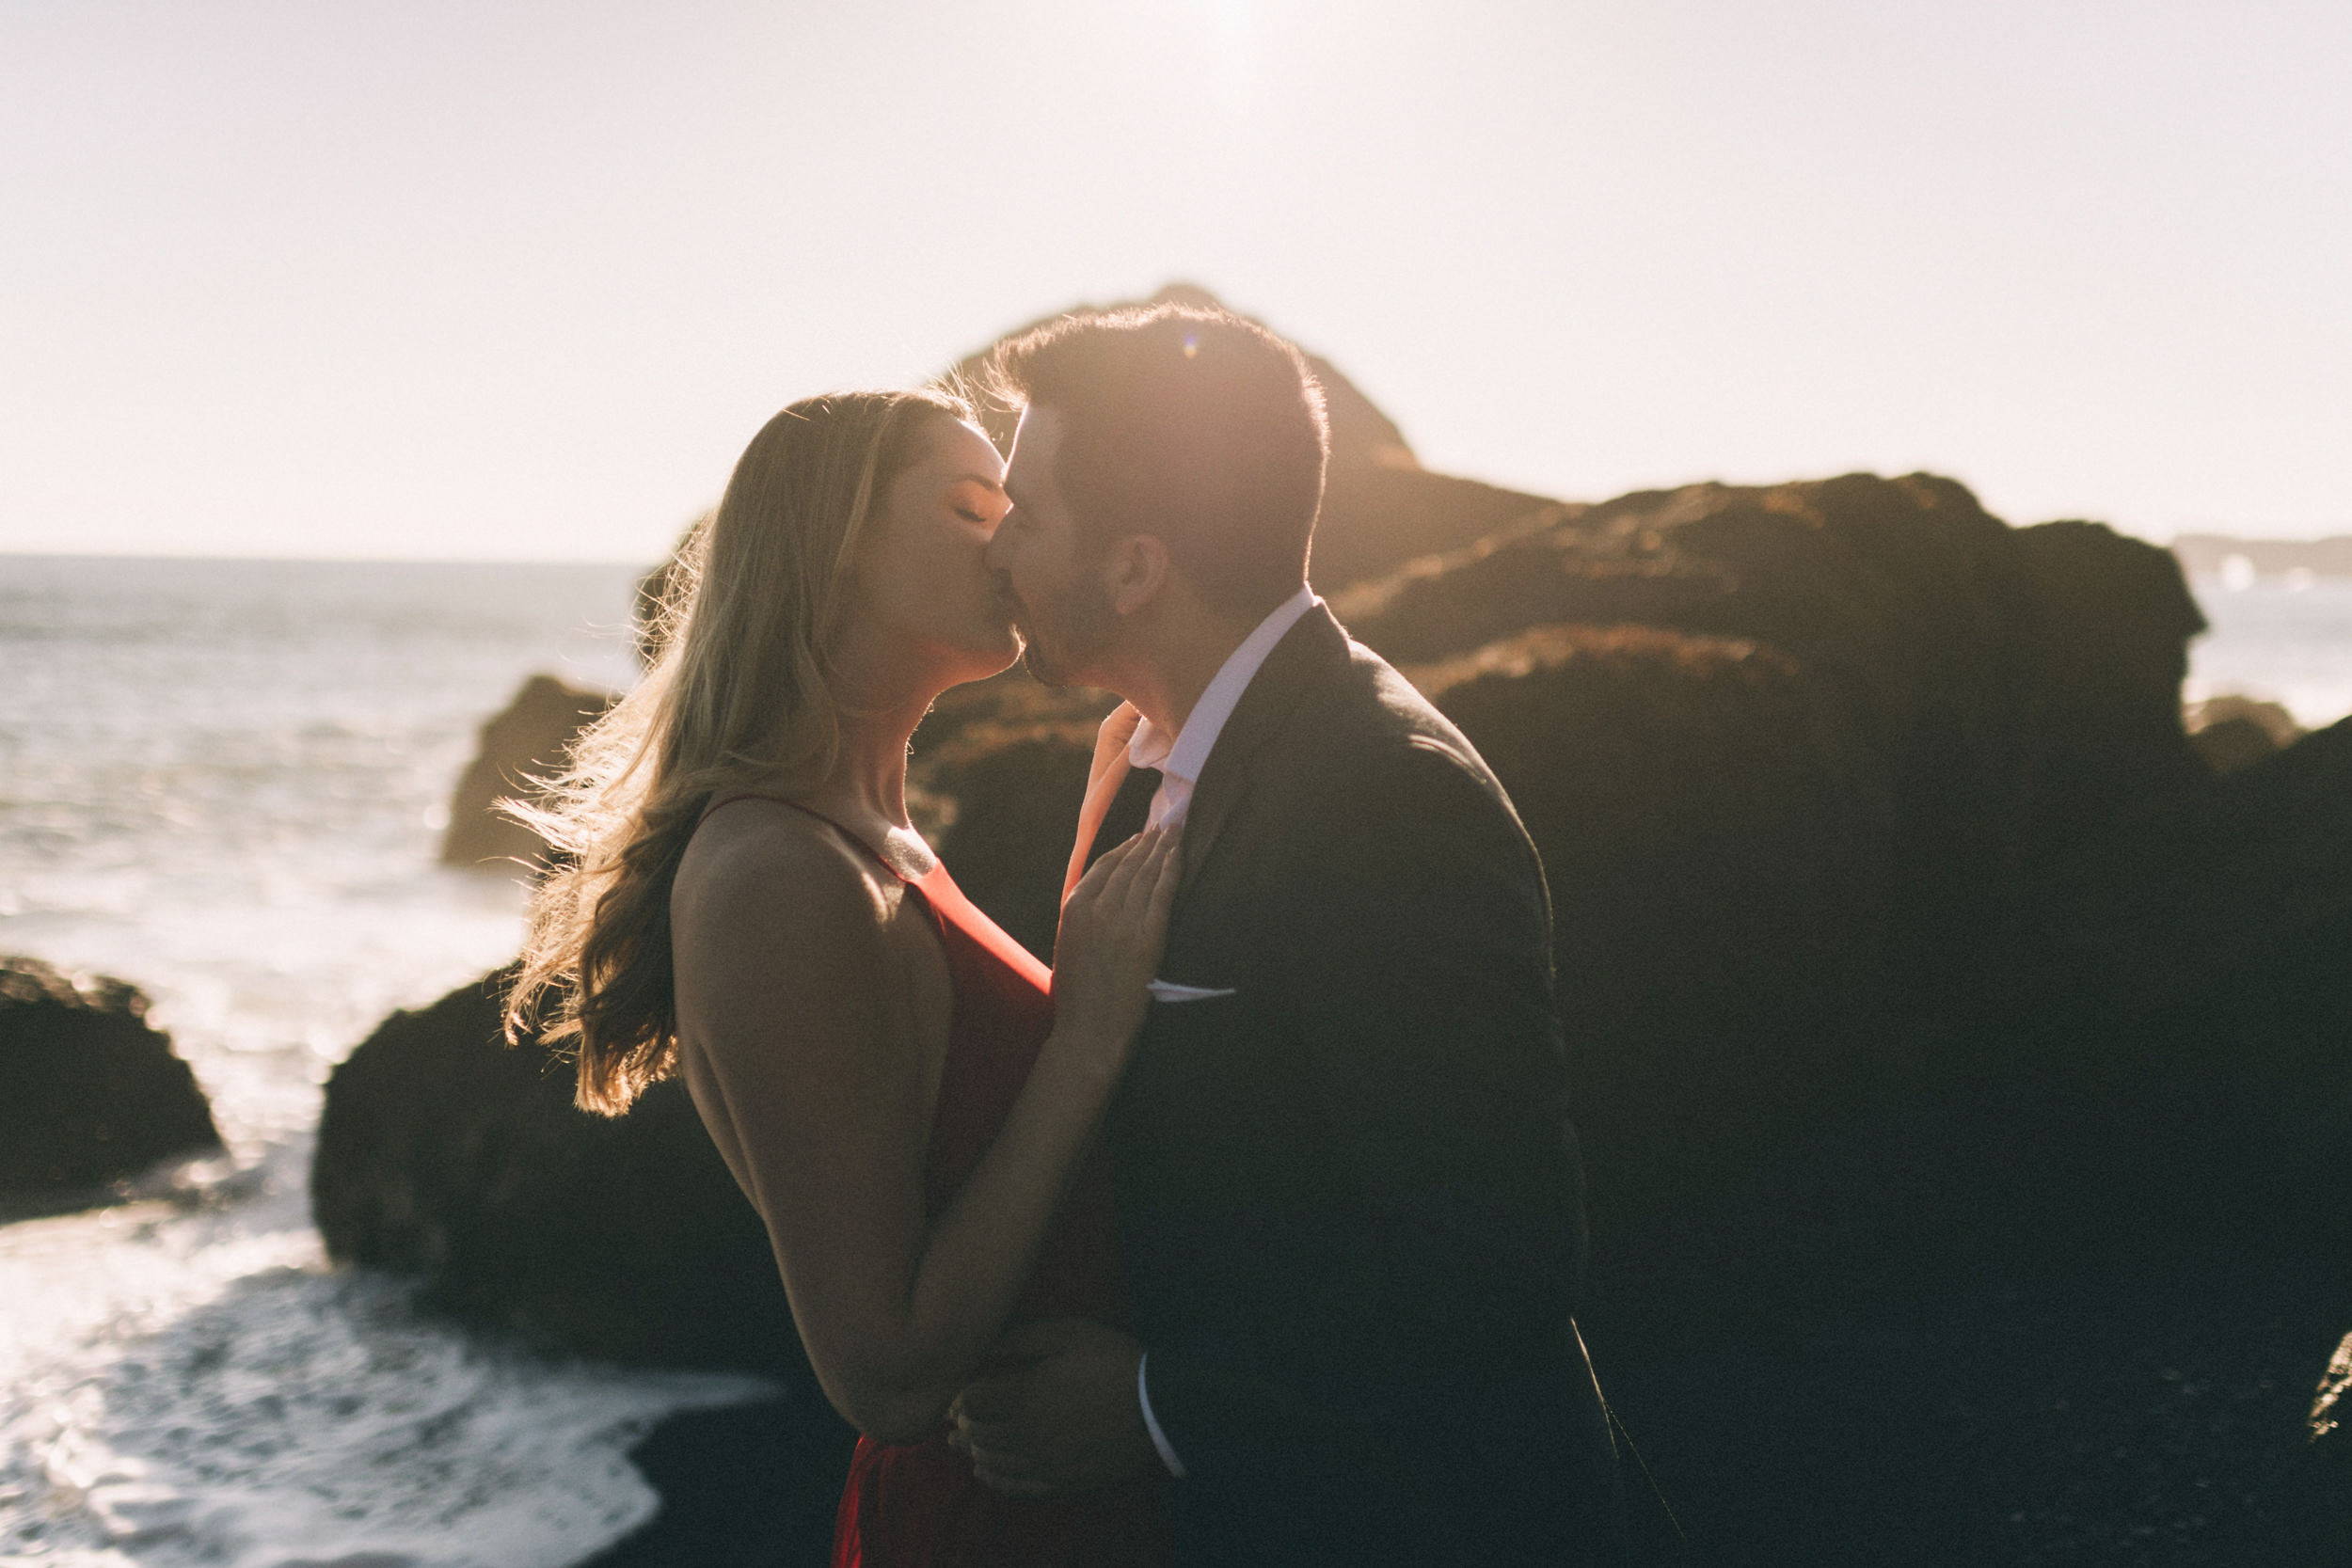 Sarah-Katherine-Davis-Photography-Iceland-Adventure-Elopement-Photographer-Louisville-Kentucky-Wedding-Photographer-Travel-Vik-Beach-Engagement-Session-Red-Dress-Reynisfjara-127edit.jpg